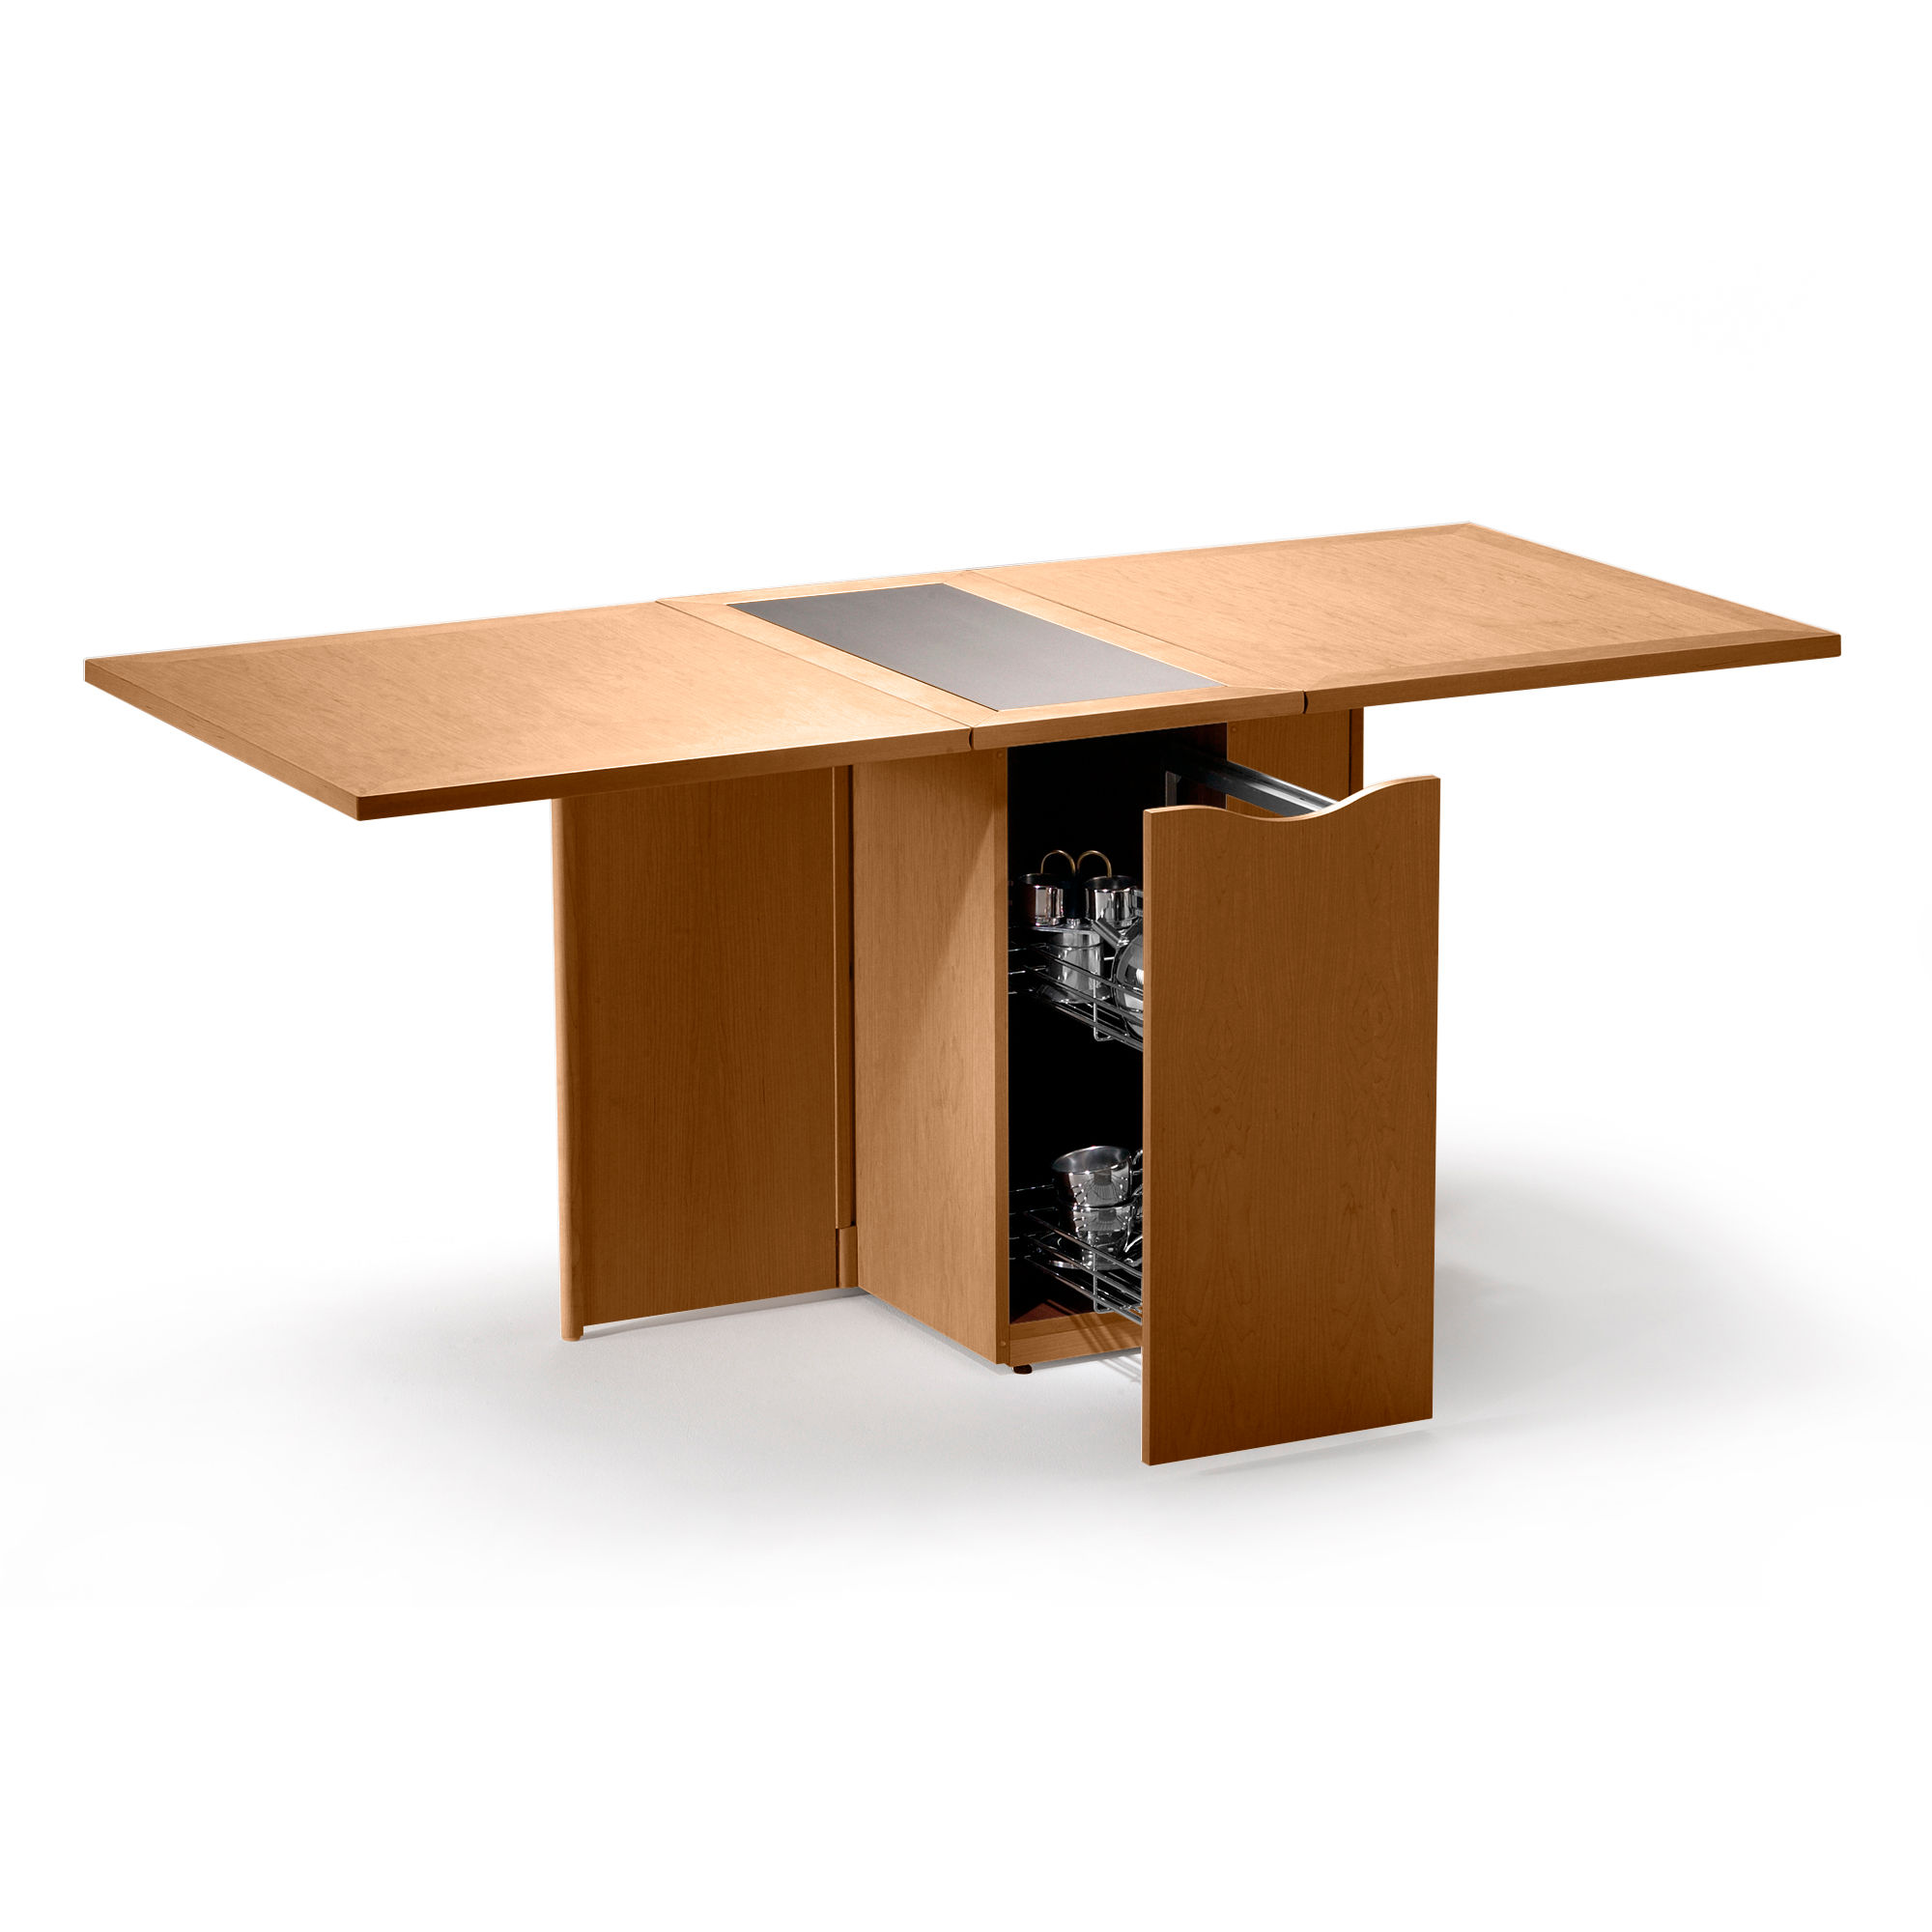 Extending Outdoor Dining Table Extendable Dining Table Smart Furniture